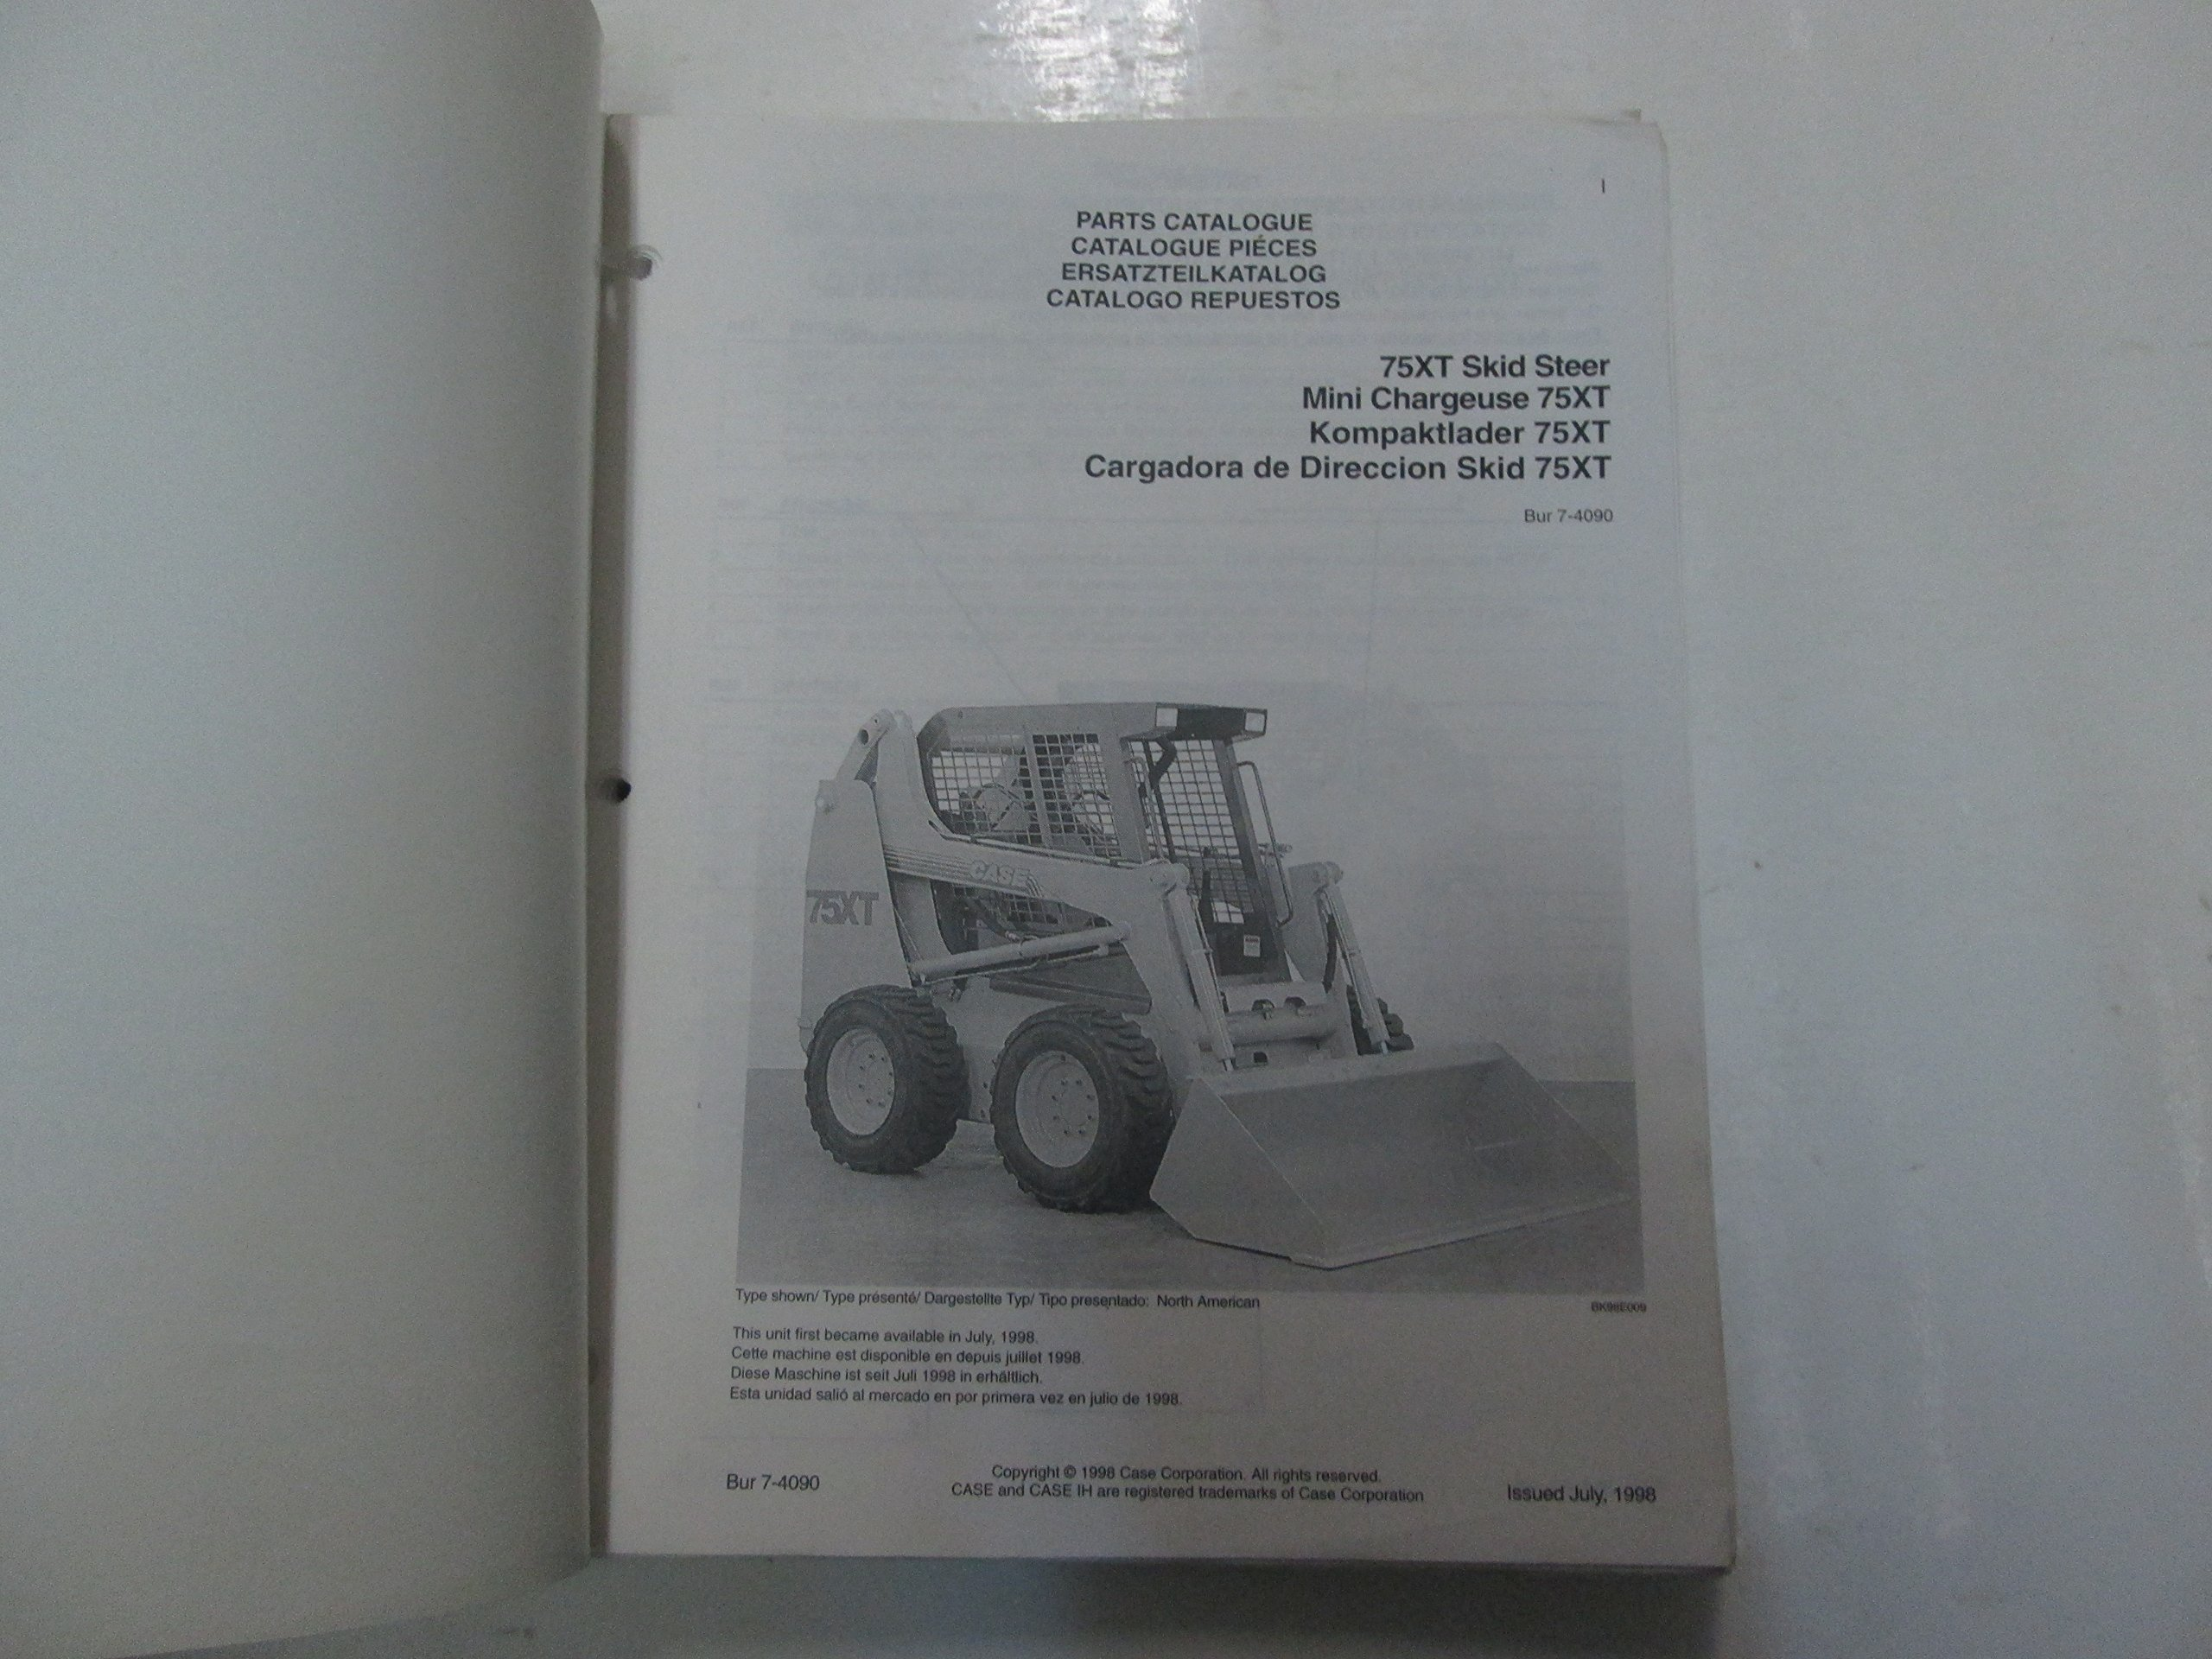 CASE 75XT Skid Steer Parts Catalog Manual LOOSE LEAF MINOR WEAR OEM ***: CASE: Amazon.com: Books